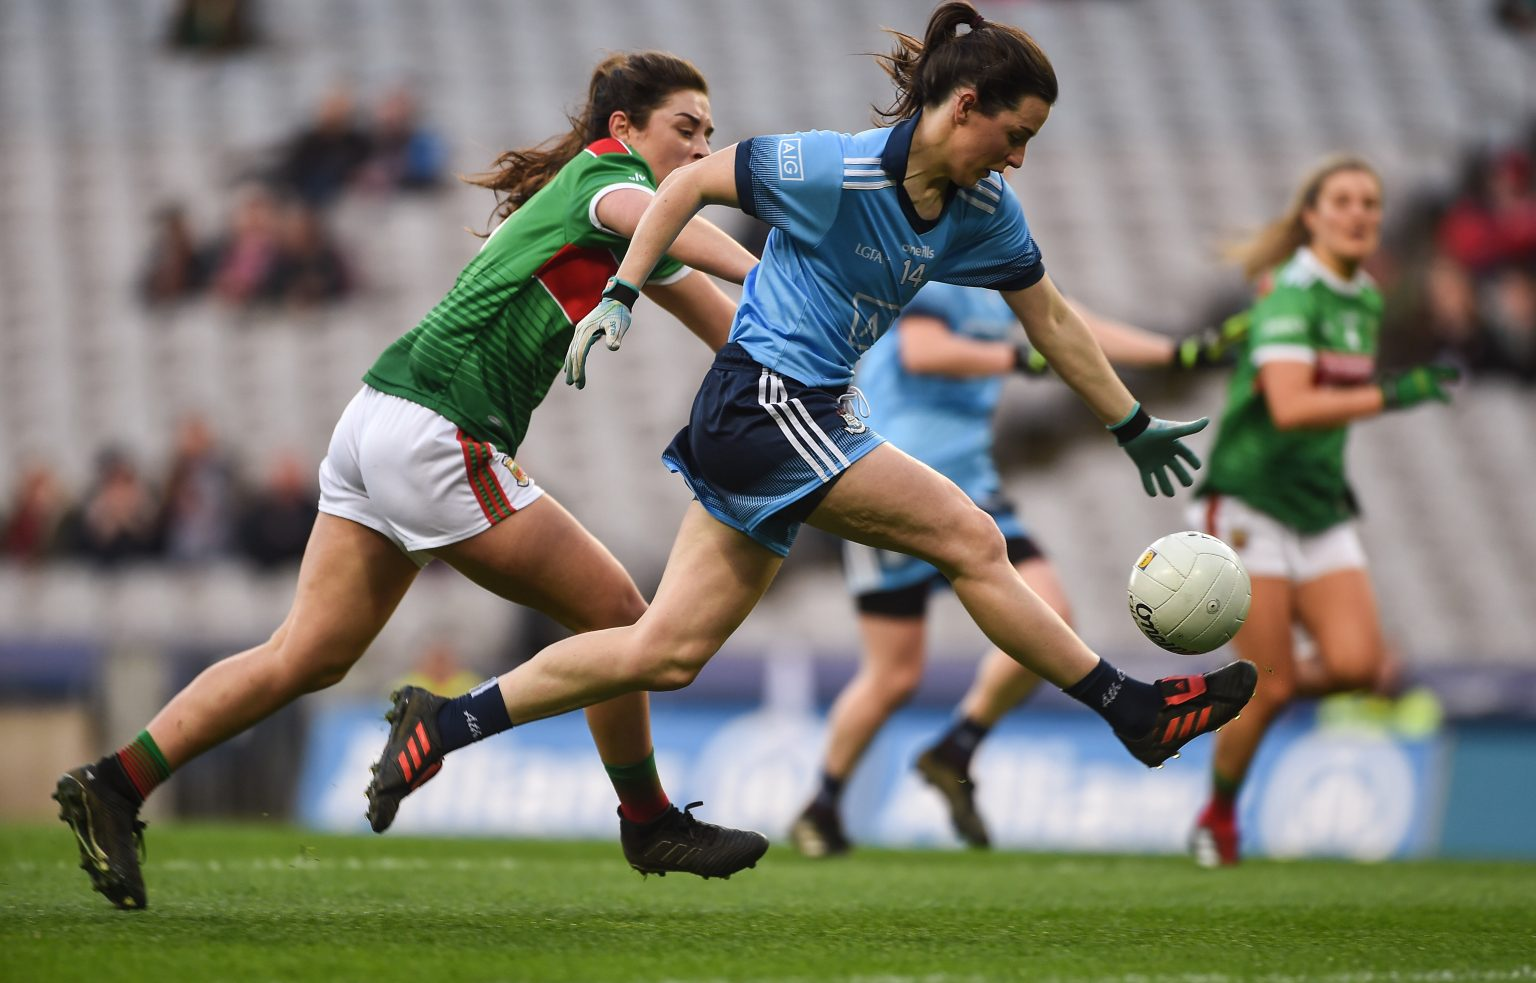 Dublin Ladies Footballer Lyndsey Davey in a sky blue jersey and navy shorts breaks away with the ball from a Mayo defender in a green and red jersey and white shorts